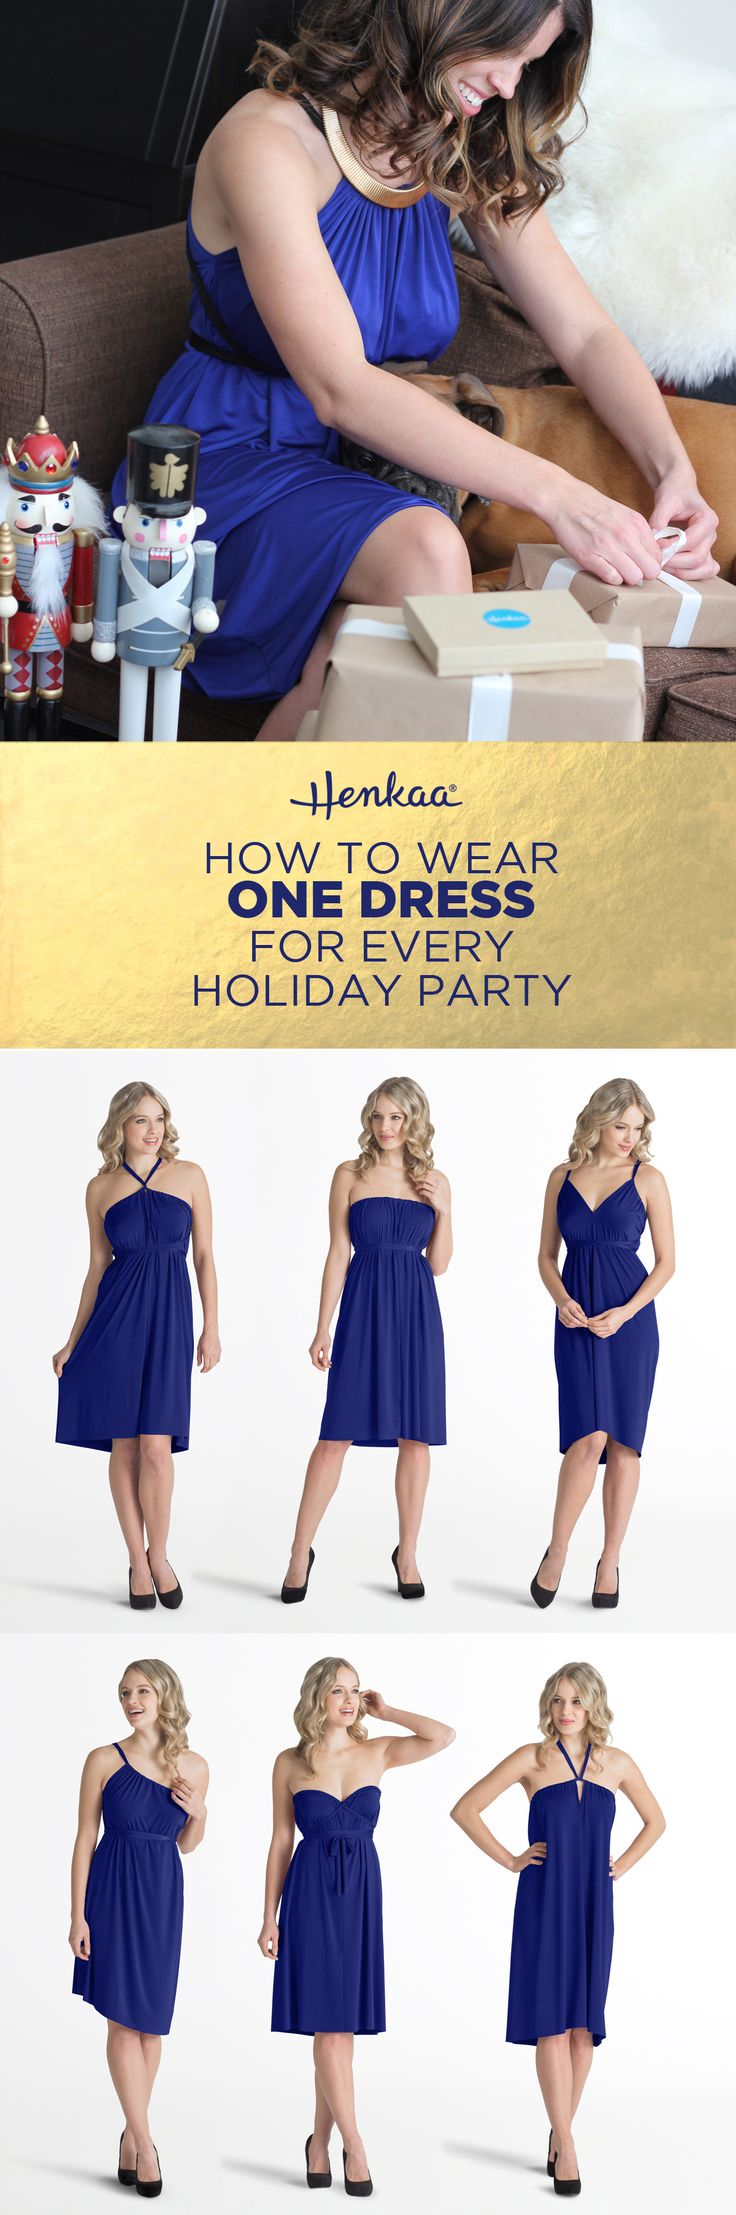 How to wear one dress for every holiday party- The Ivy Convertible Dress easily changes style with just a simple change of the drawstrings.